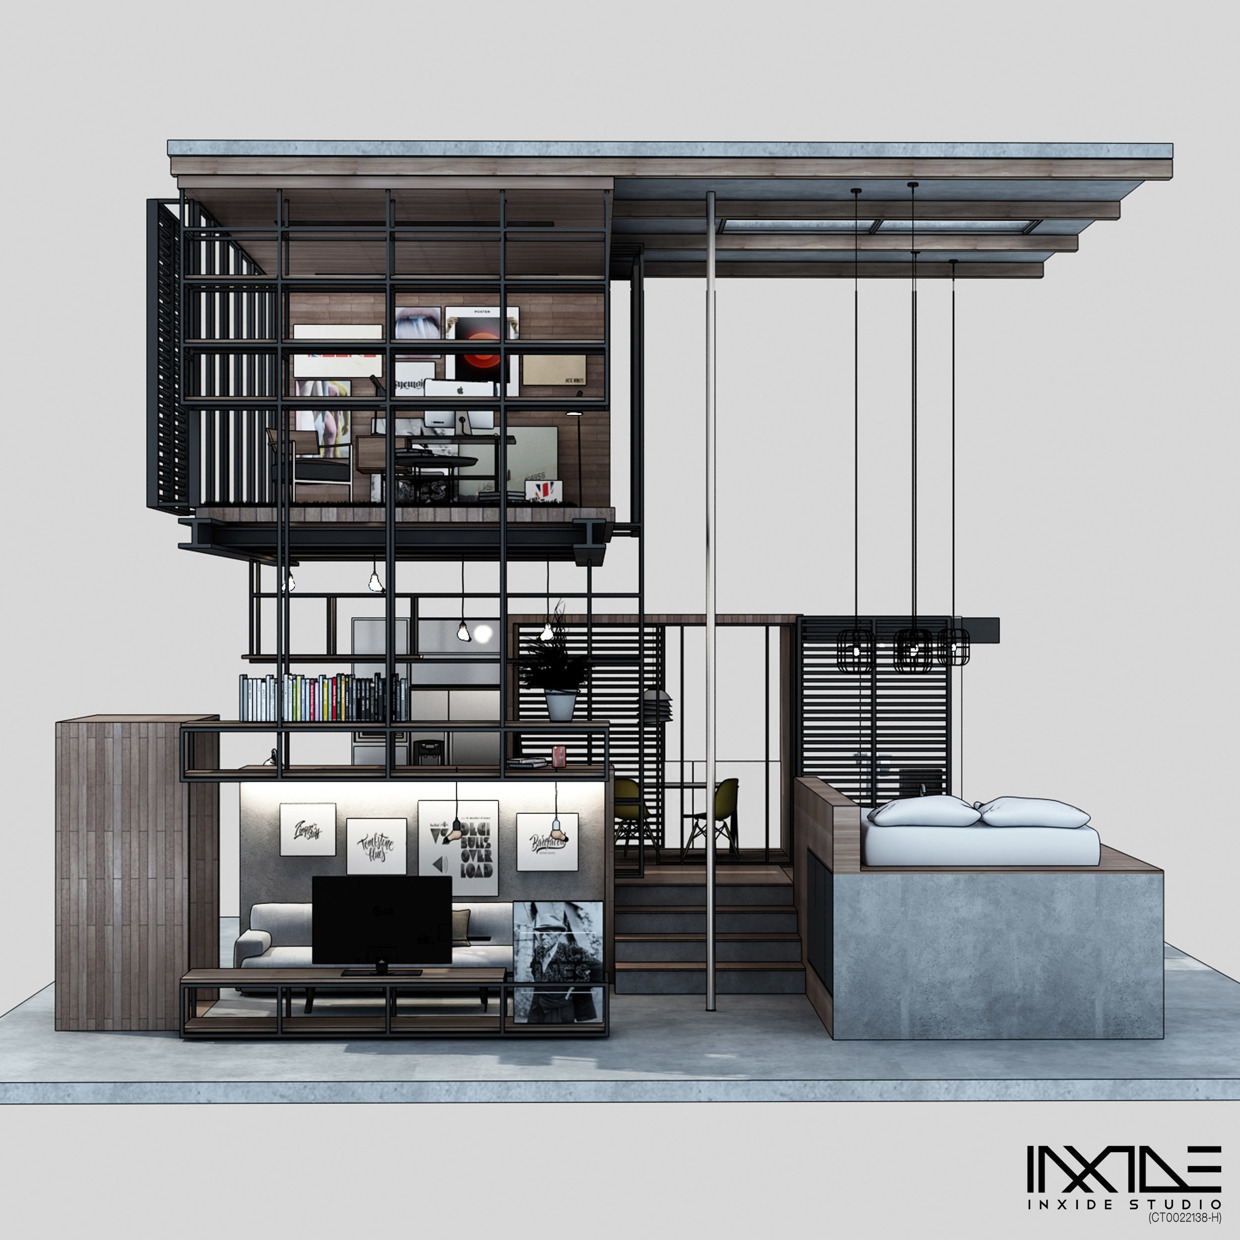 Compact modern house made from affordable materials for Beach house designs living upstairs